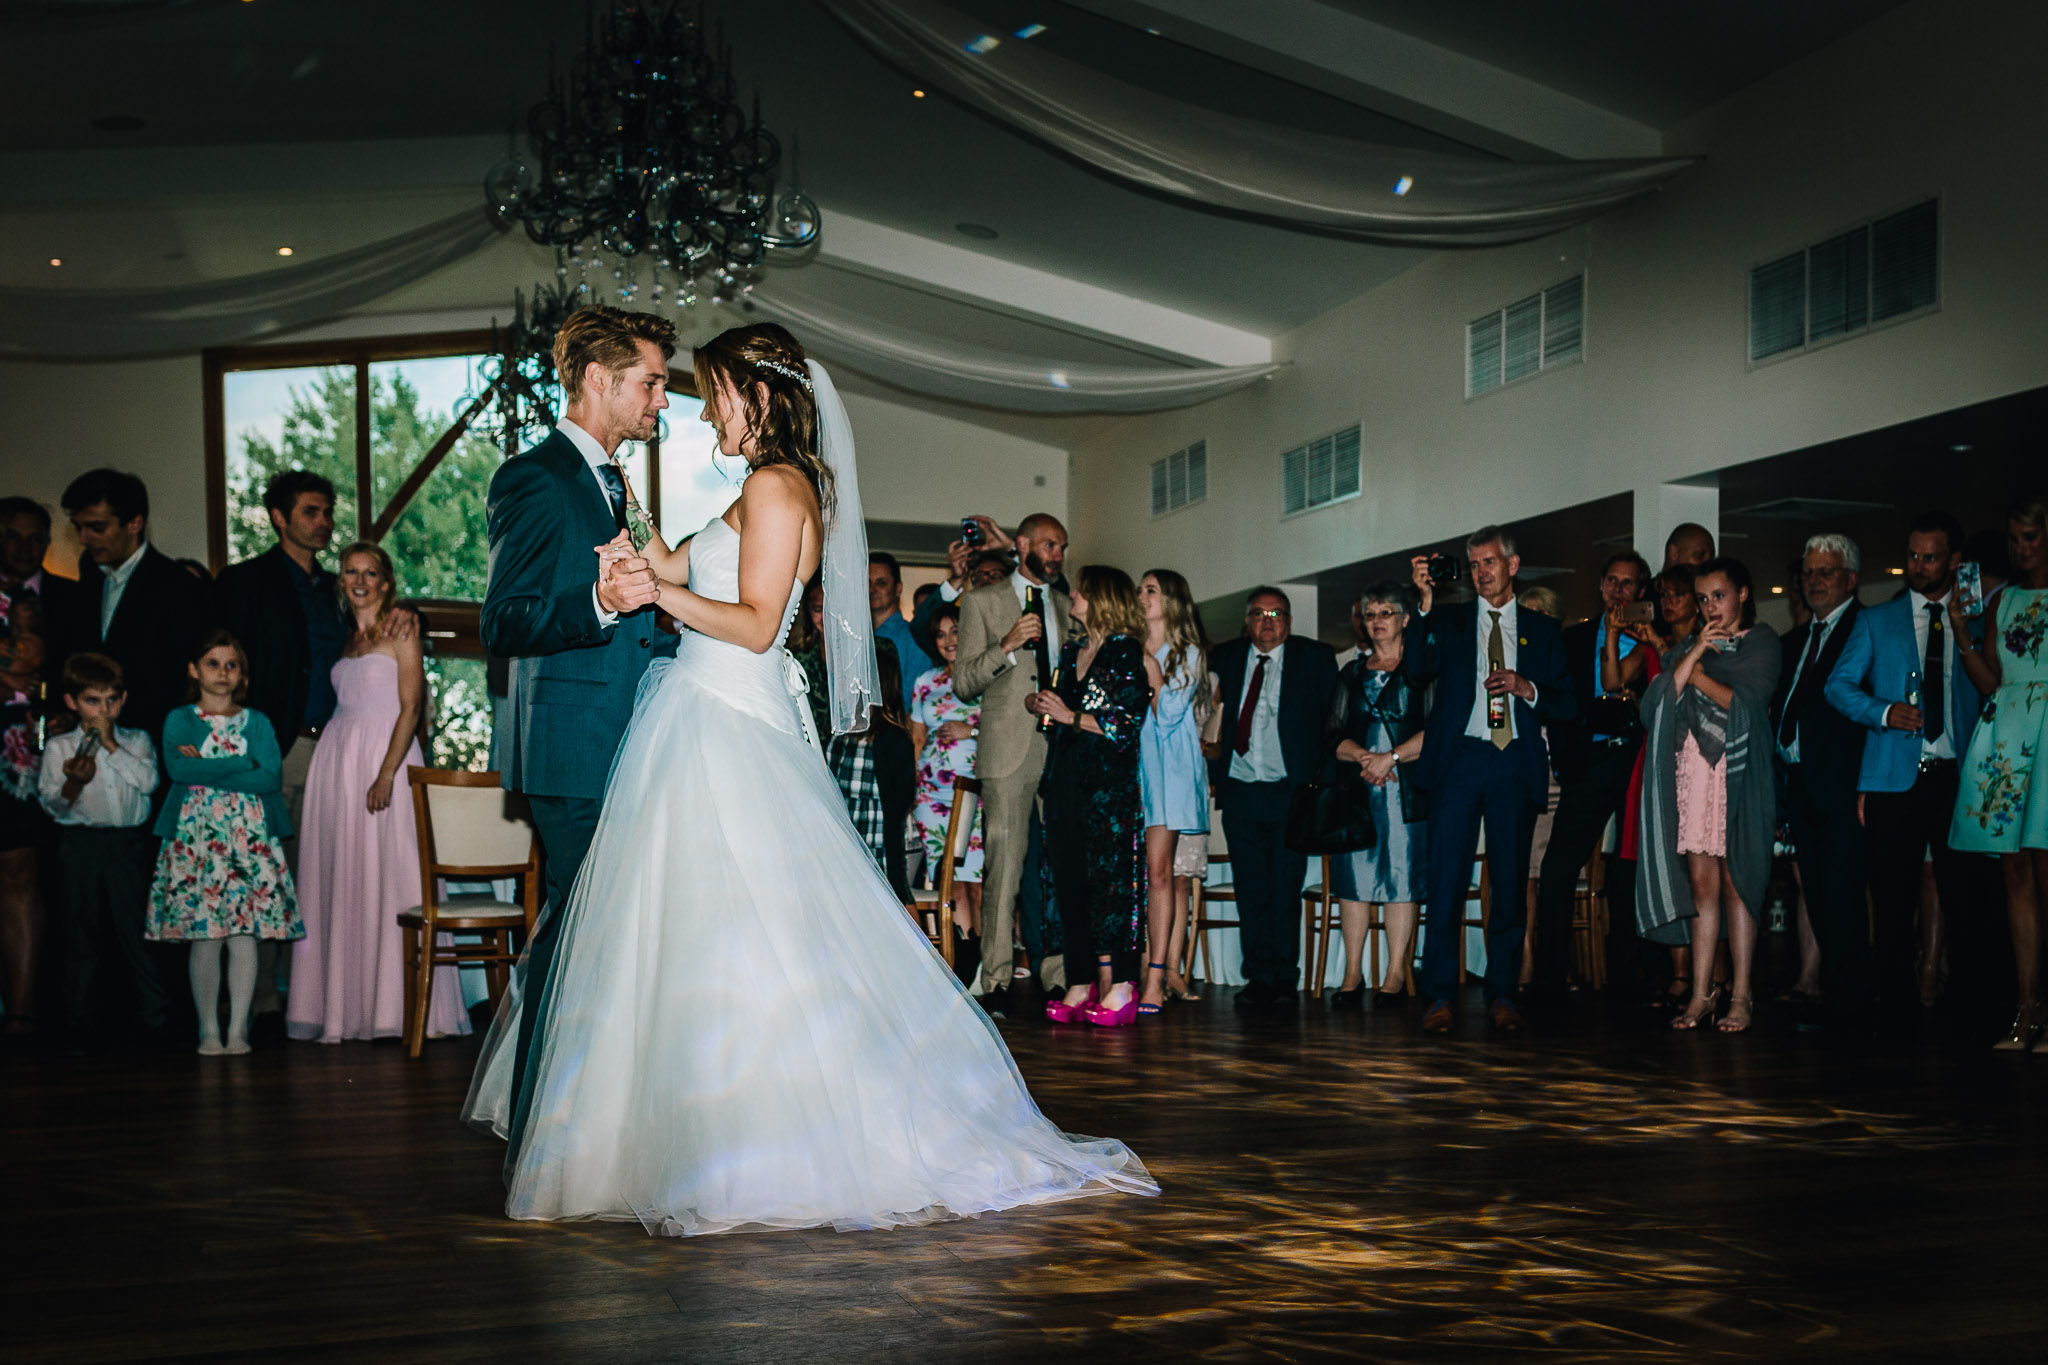 COUPLES FIRST WEDDING DANCE IN FRONT GUESTS ON DANCE FLOOR